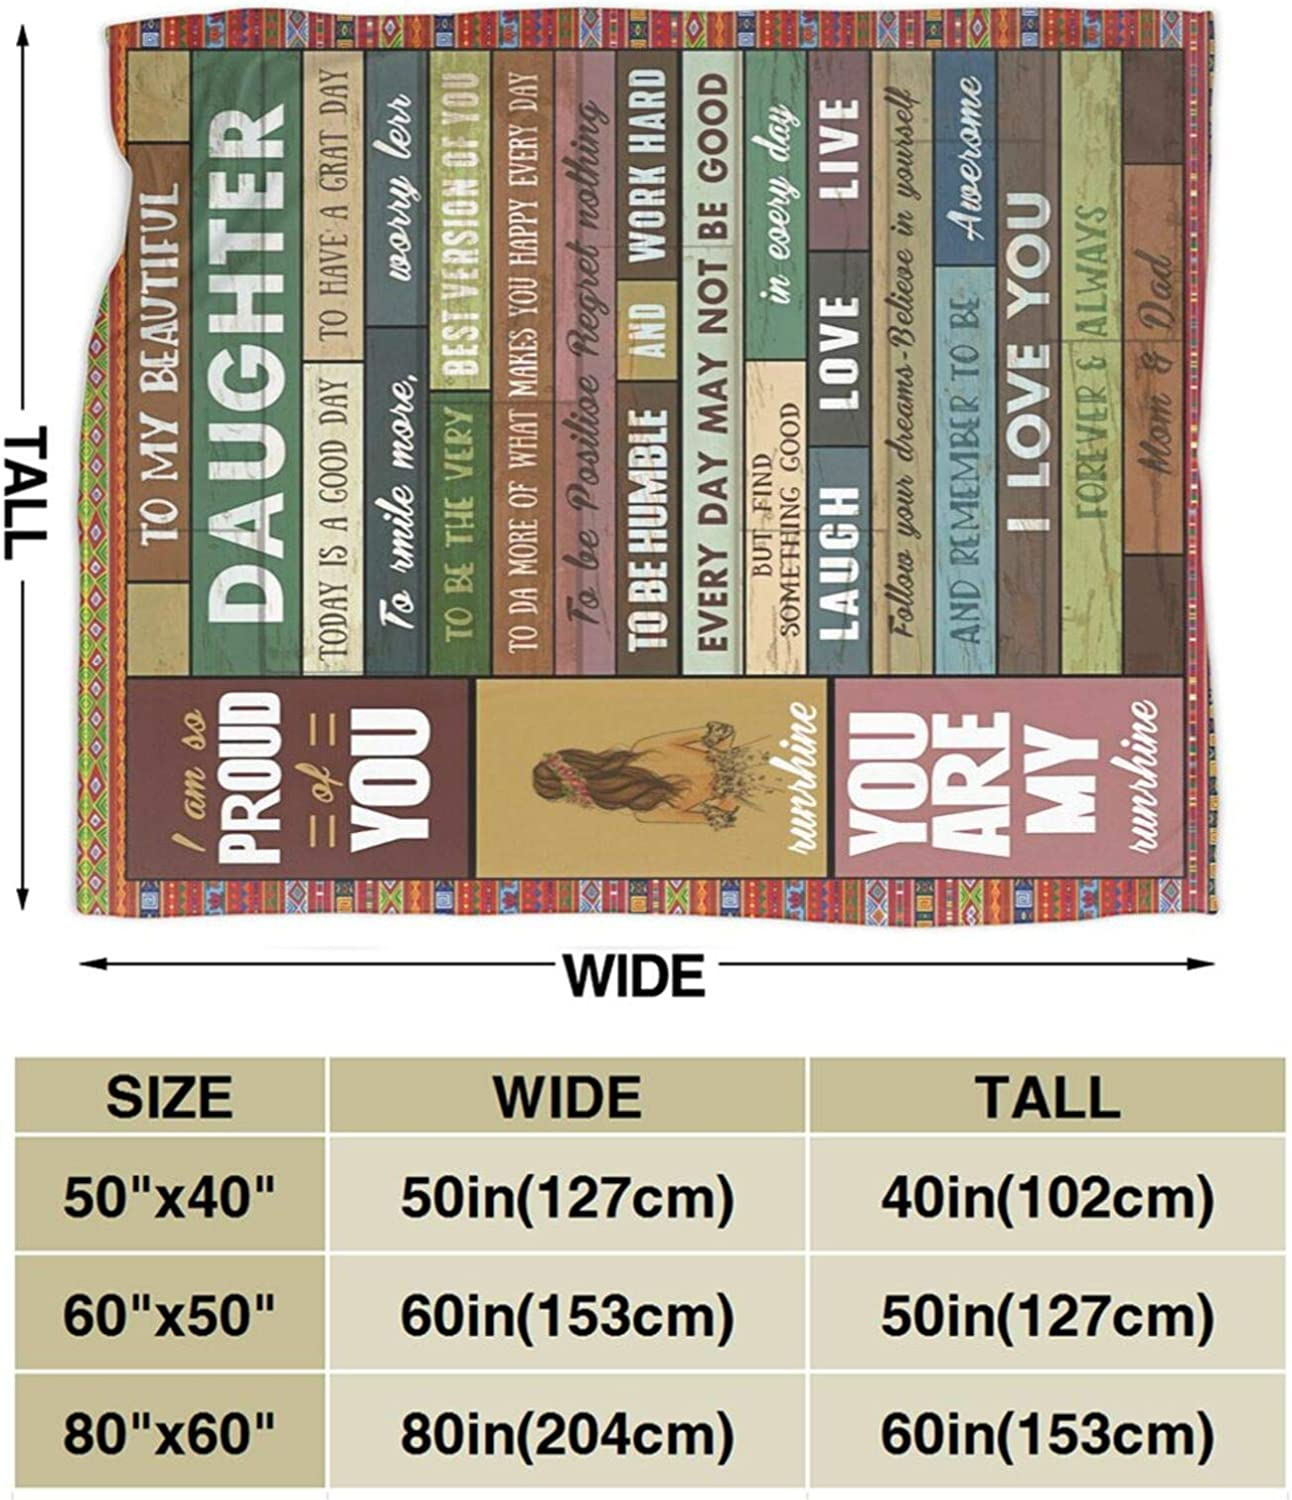 Carwayii Love Letter to My Daughter Flannel Blanket Ultra Soft Fleece Throw Blanket Lightweight Warm Bed Cover Warm Vintage Gift Lap Blanket for Couch Bed Car Sofa Blanket for Women Girls Kids S-40x50